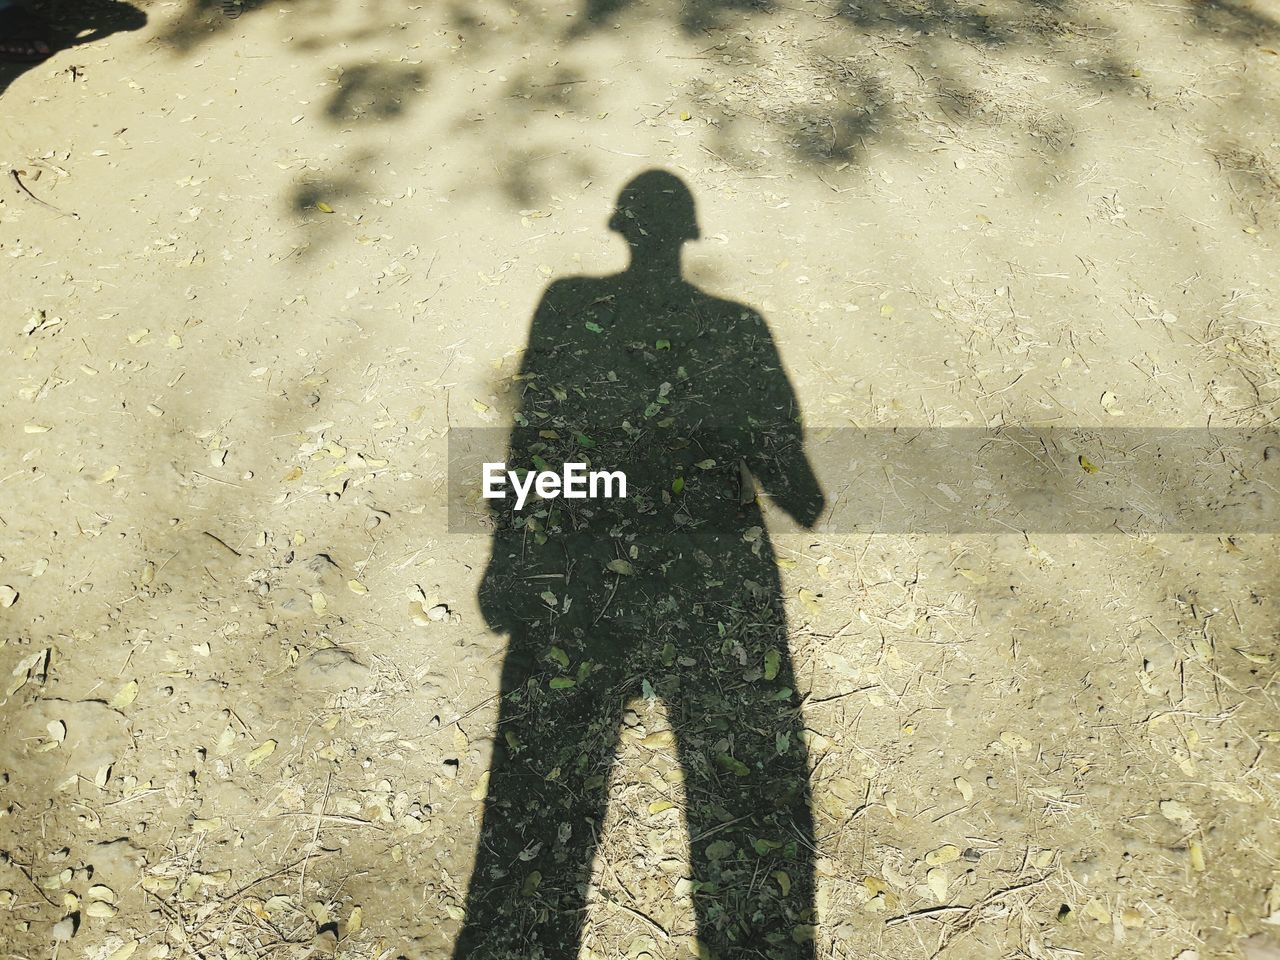 shadow, focus on shadow, real people, sunlight, high angle view, standing, one person, men, field, outdoors, day, people